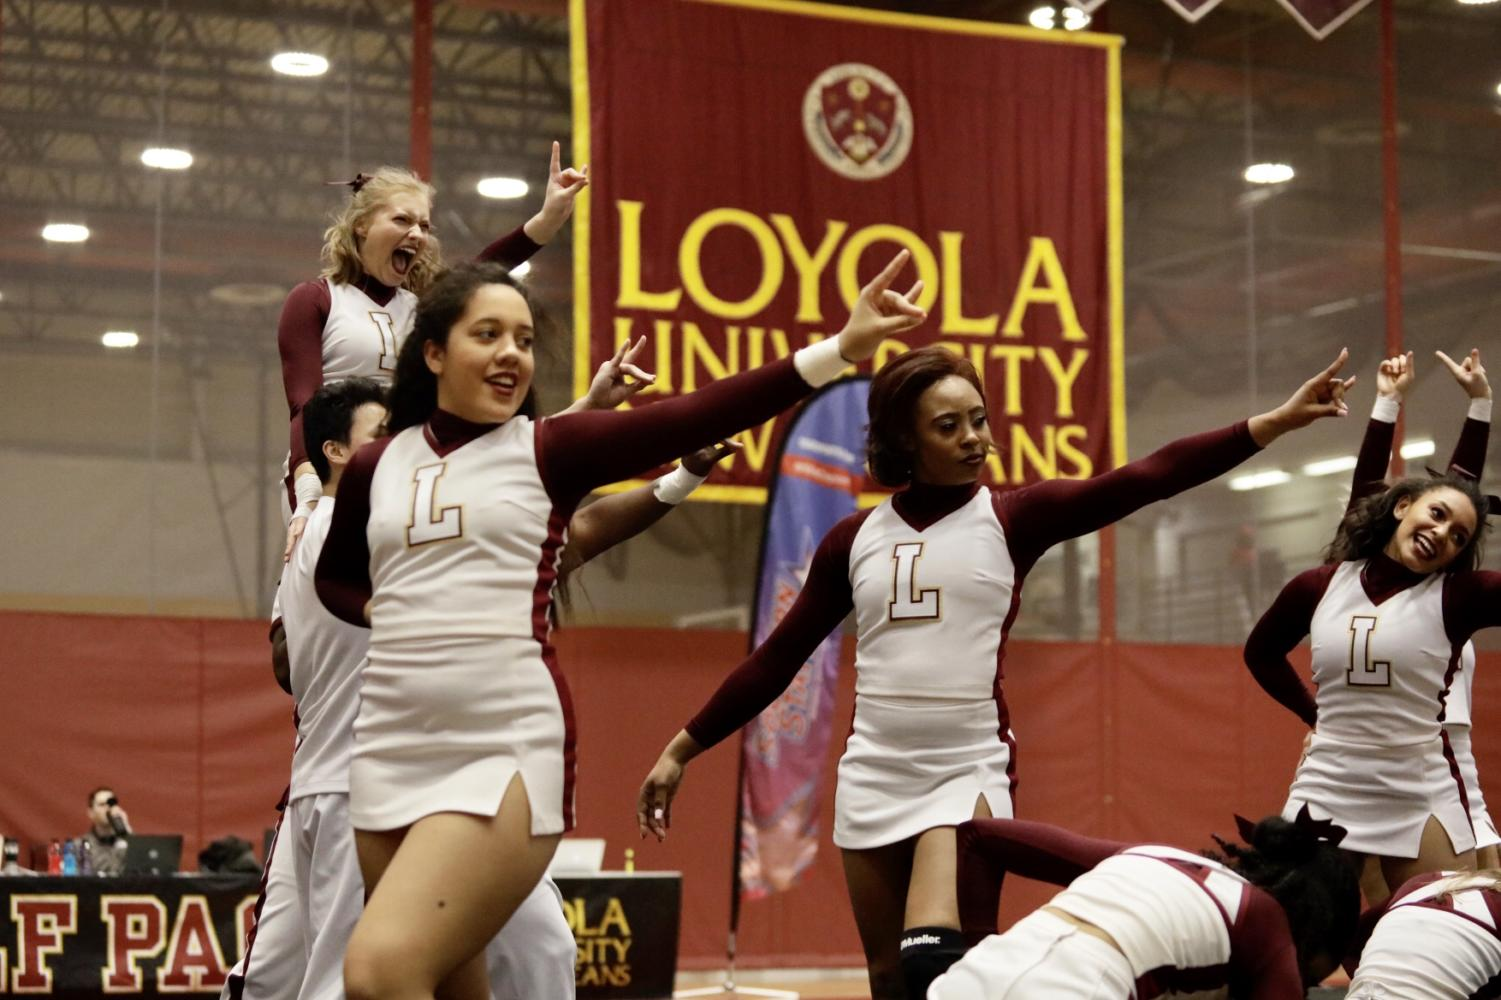 Loyola%27s+cheer+team+strikes+a+pose+during+their+routine+in+the+conference+championships.+Photo+credit%3A+Ariel+Landry